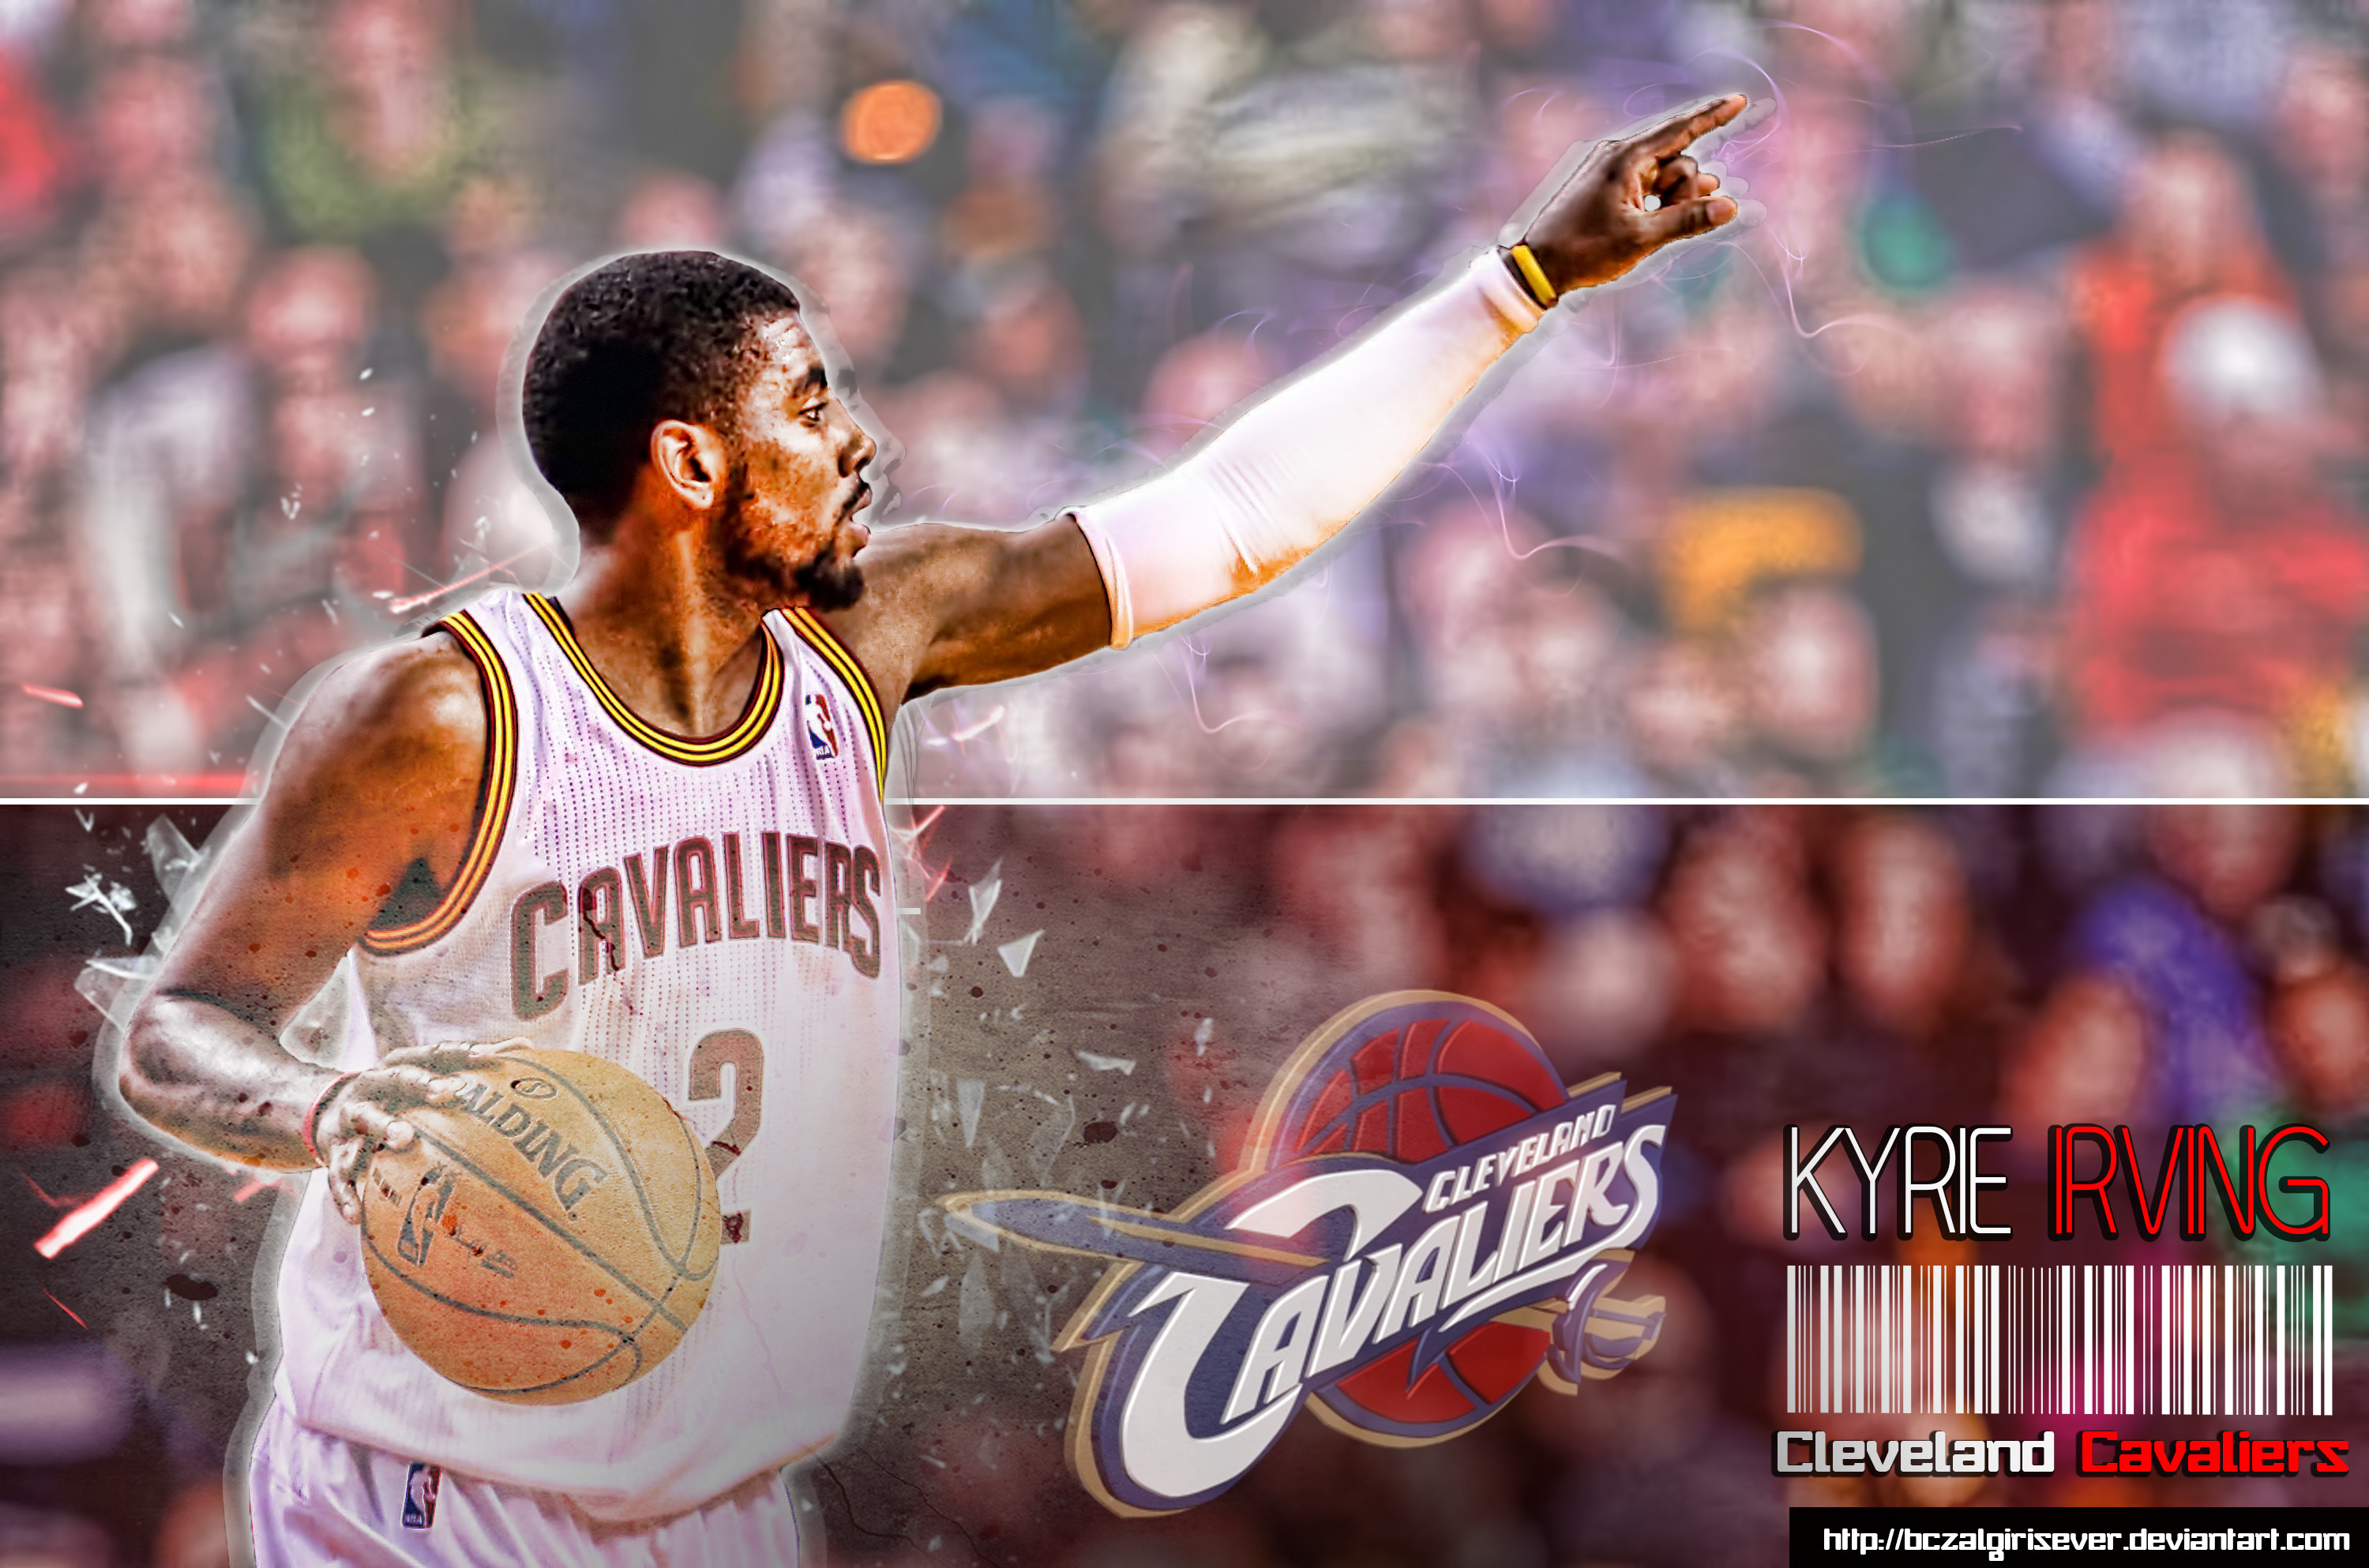 3000x1986 Kyrie Irving wallpaper by BcZalgirisEver Kyrie Irving wallpaper by  BcZalgirisEver